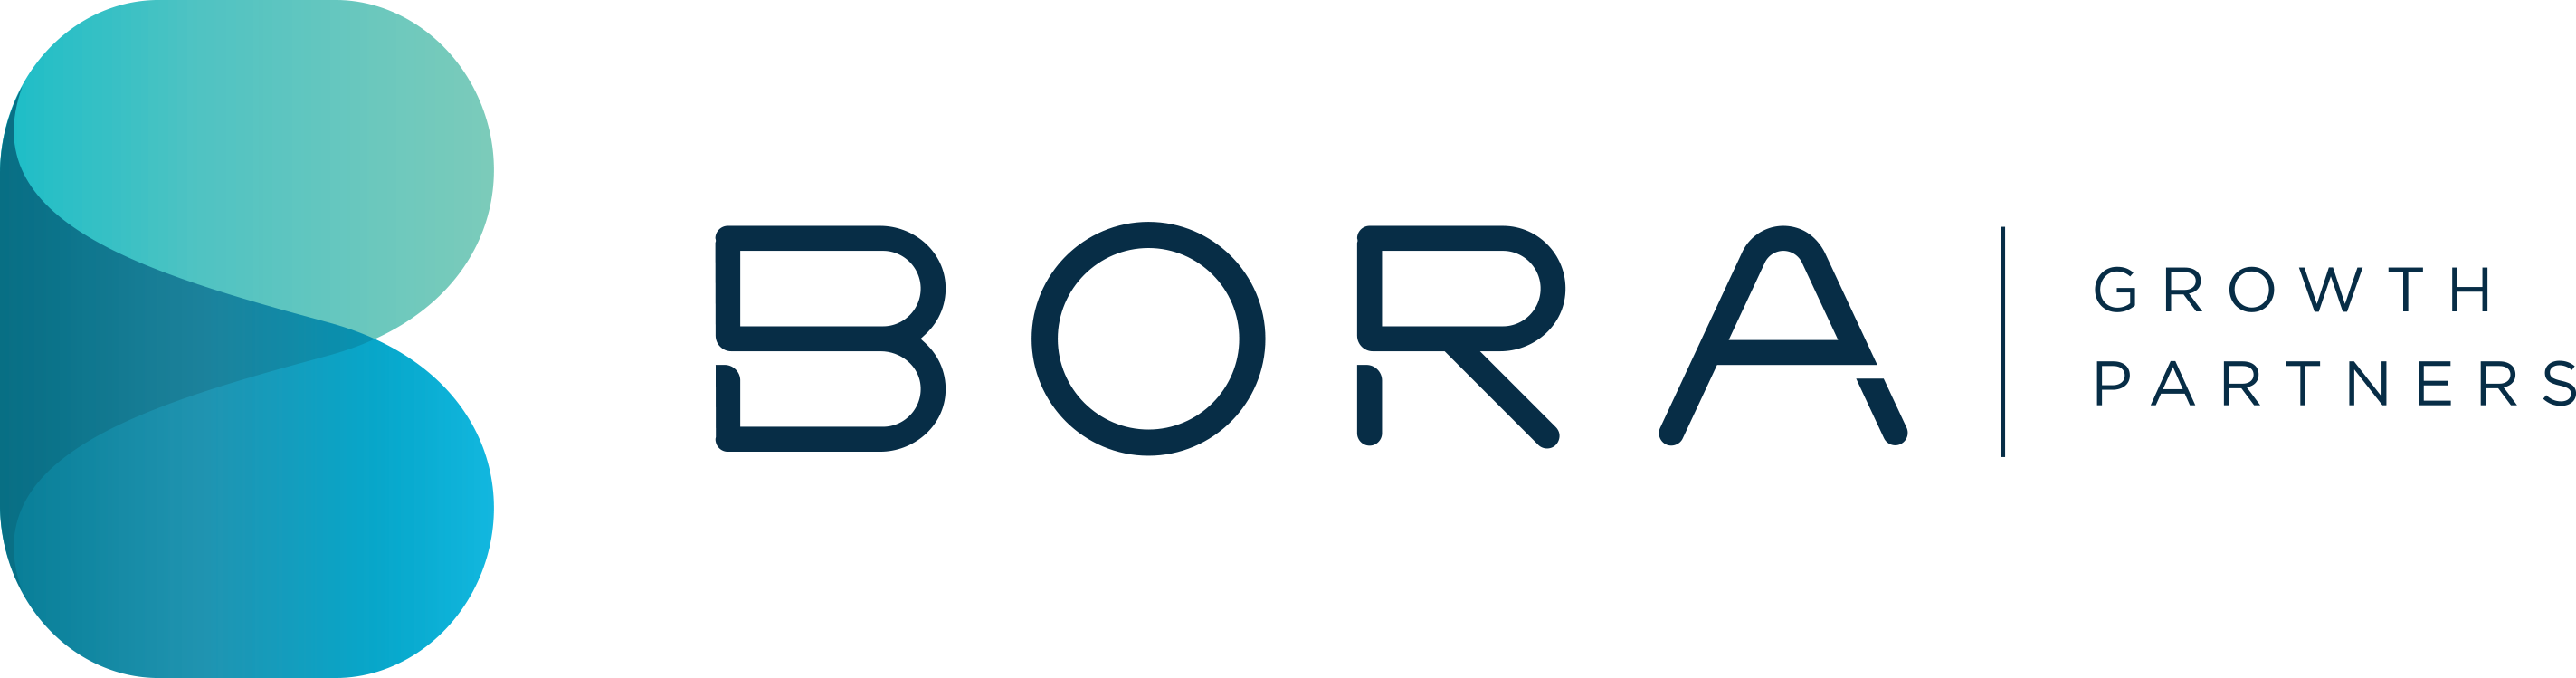 Bora Growth Partners